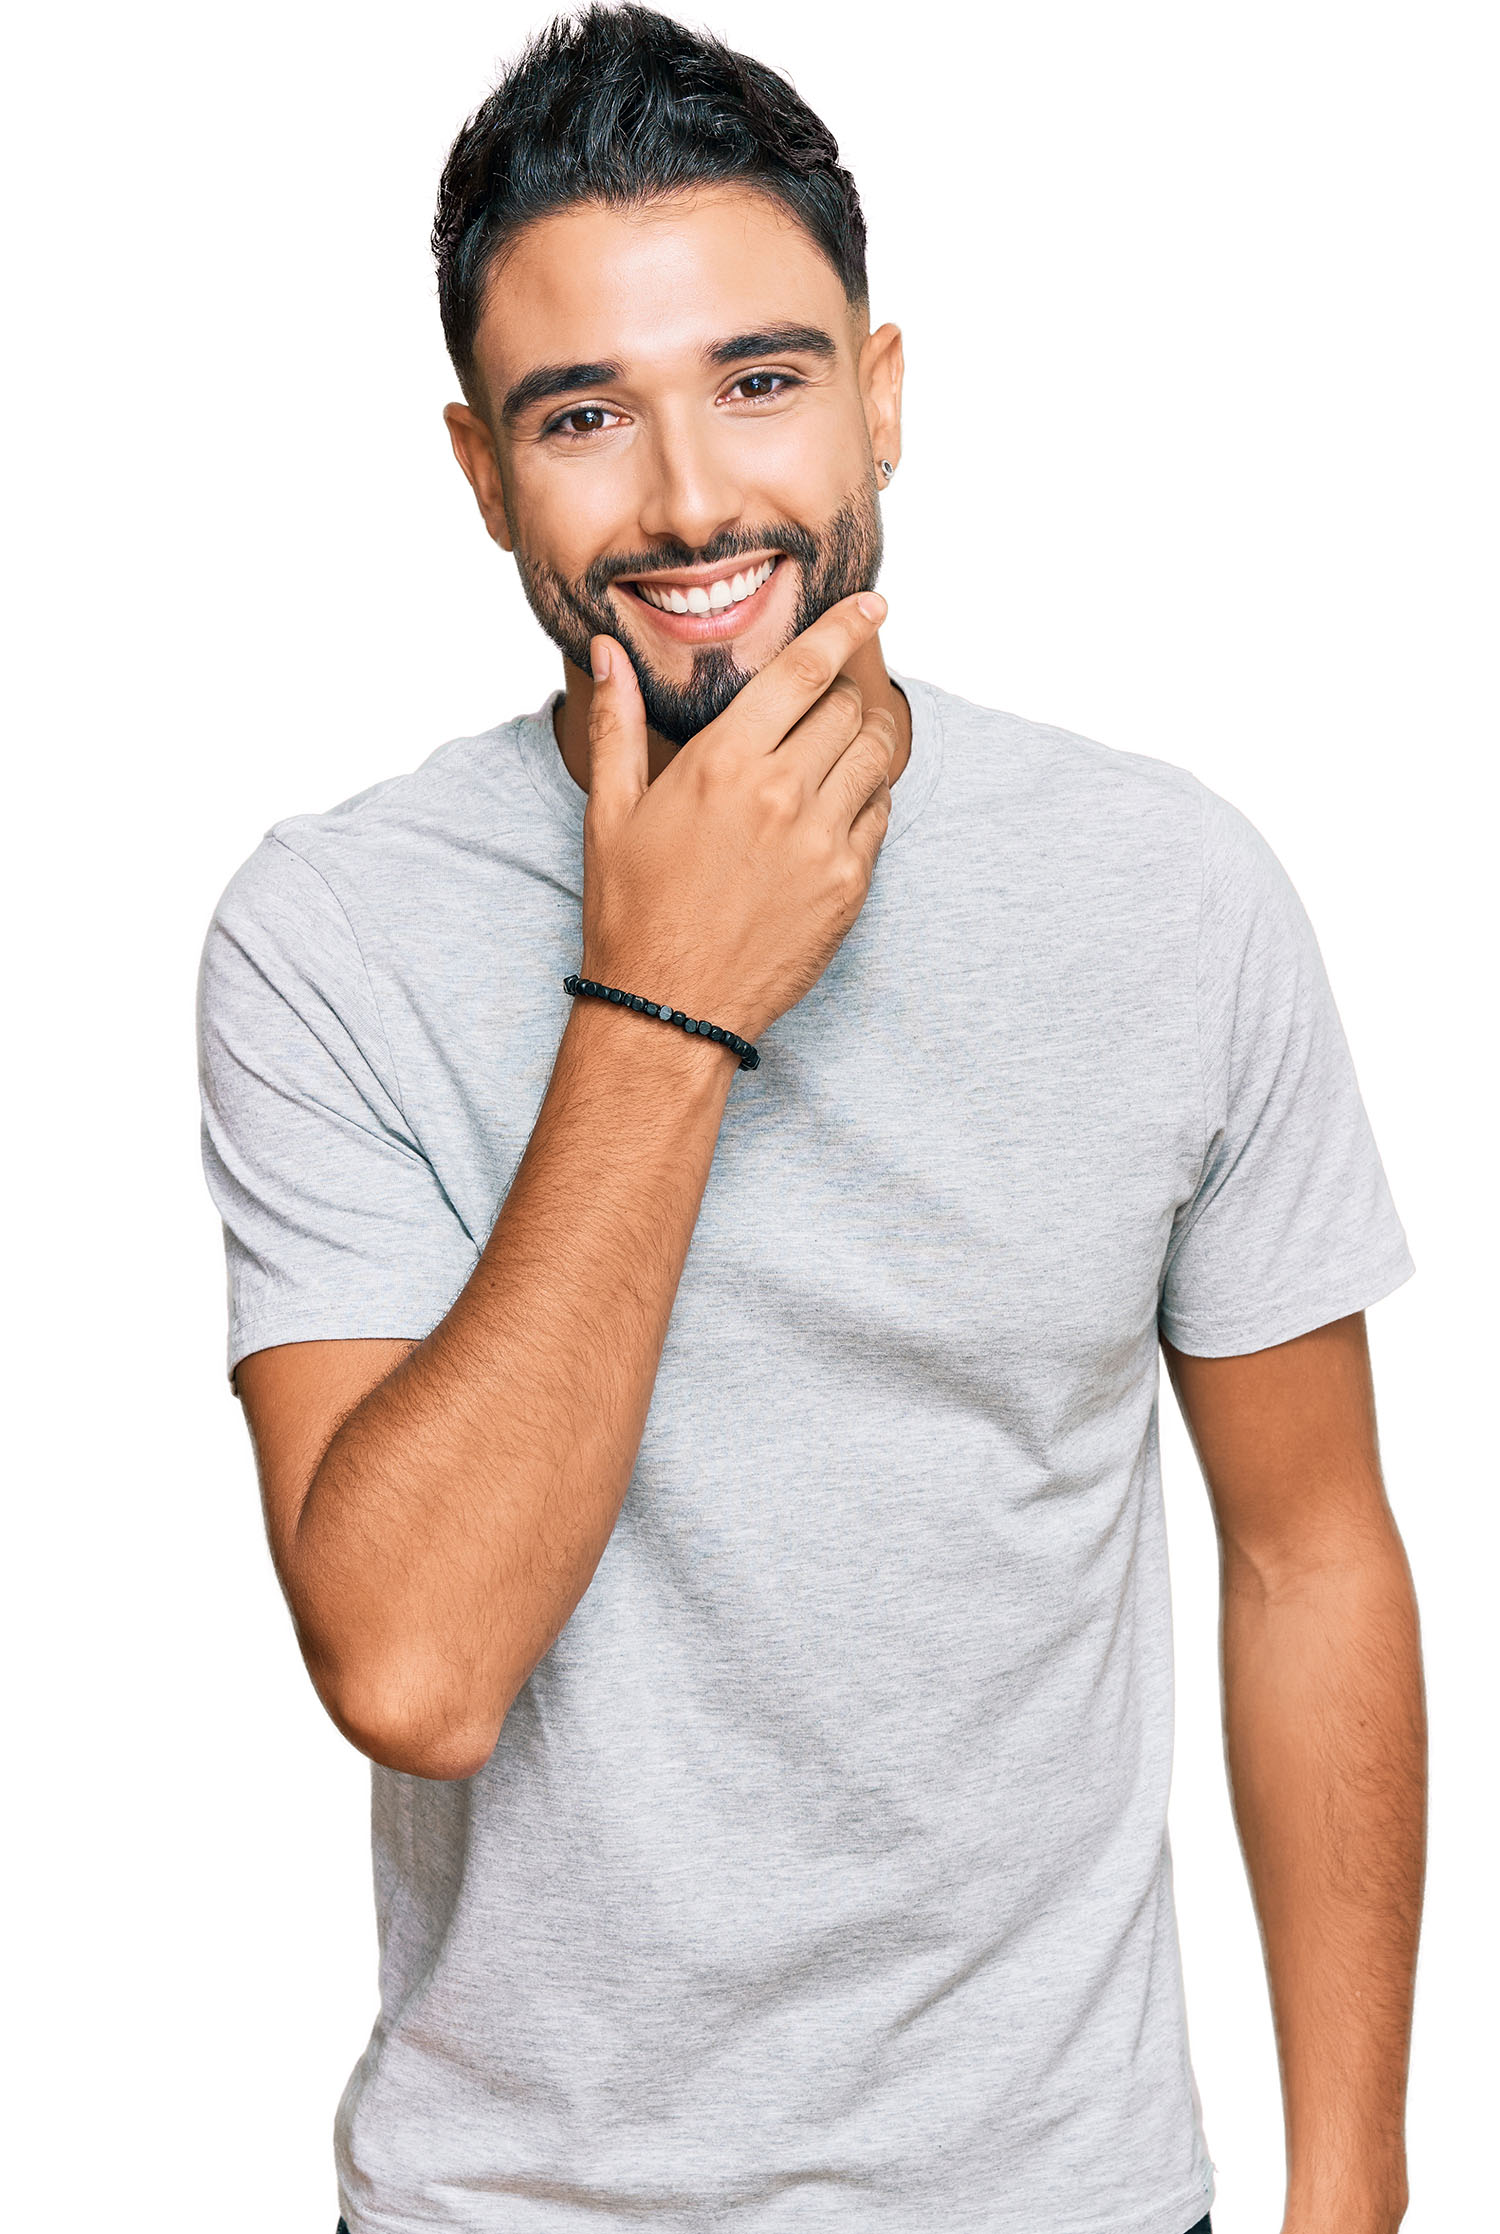 young man grinning